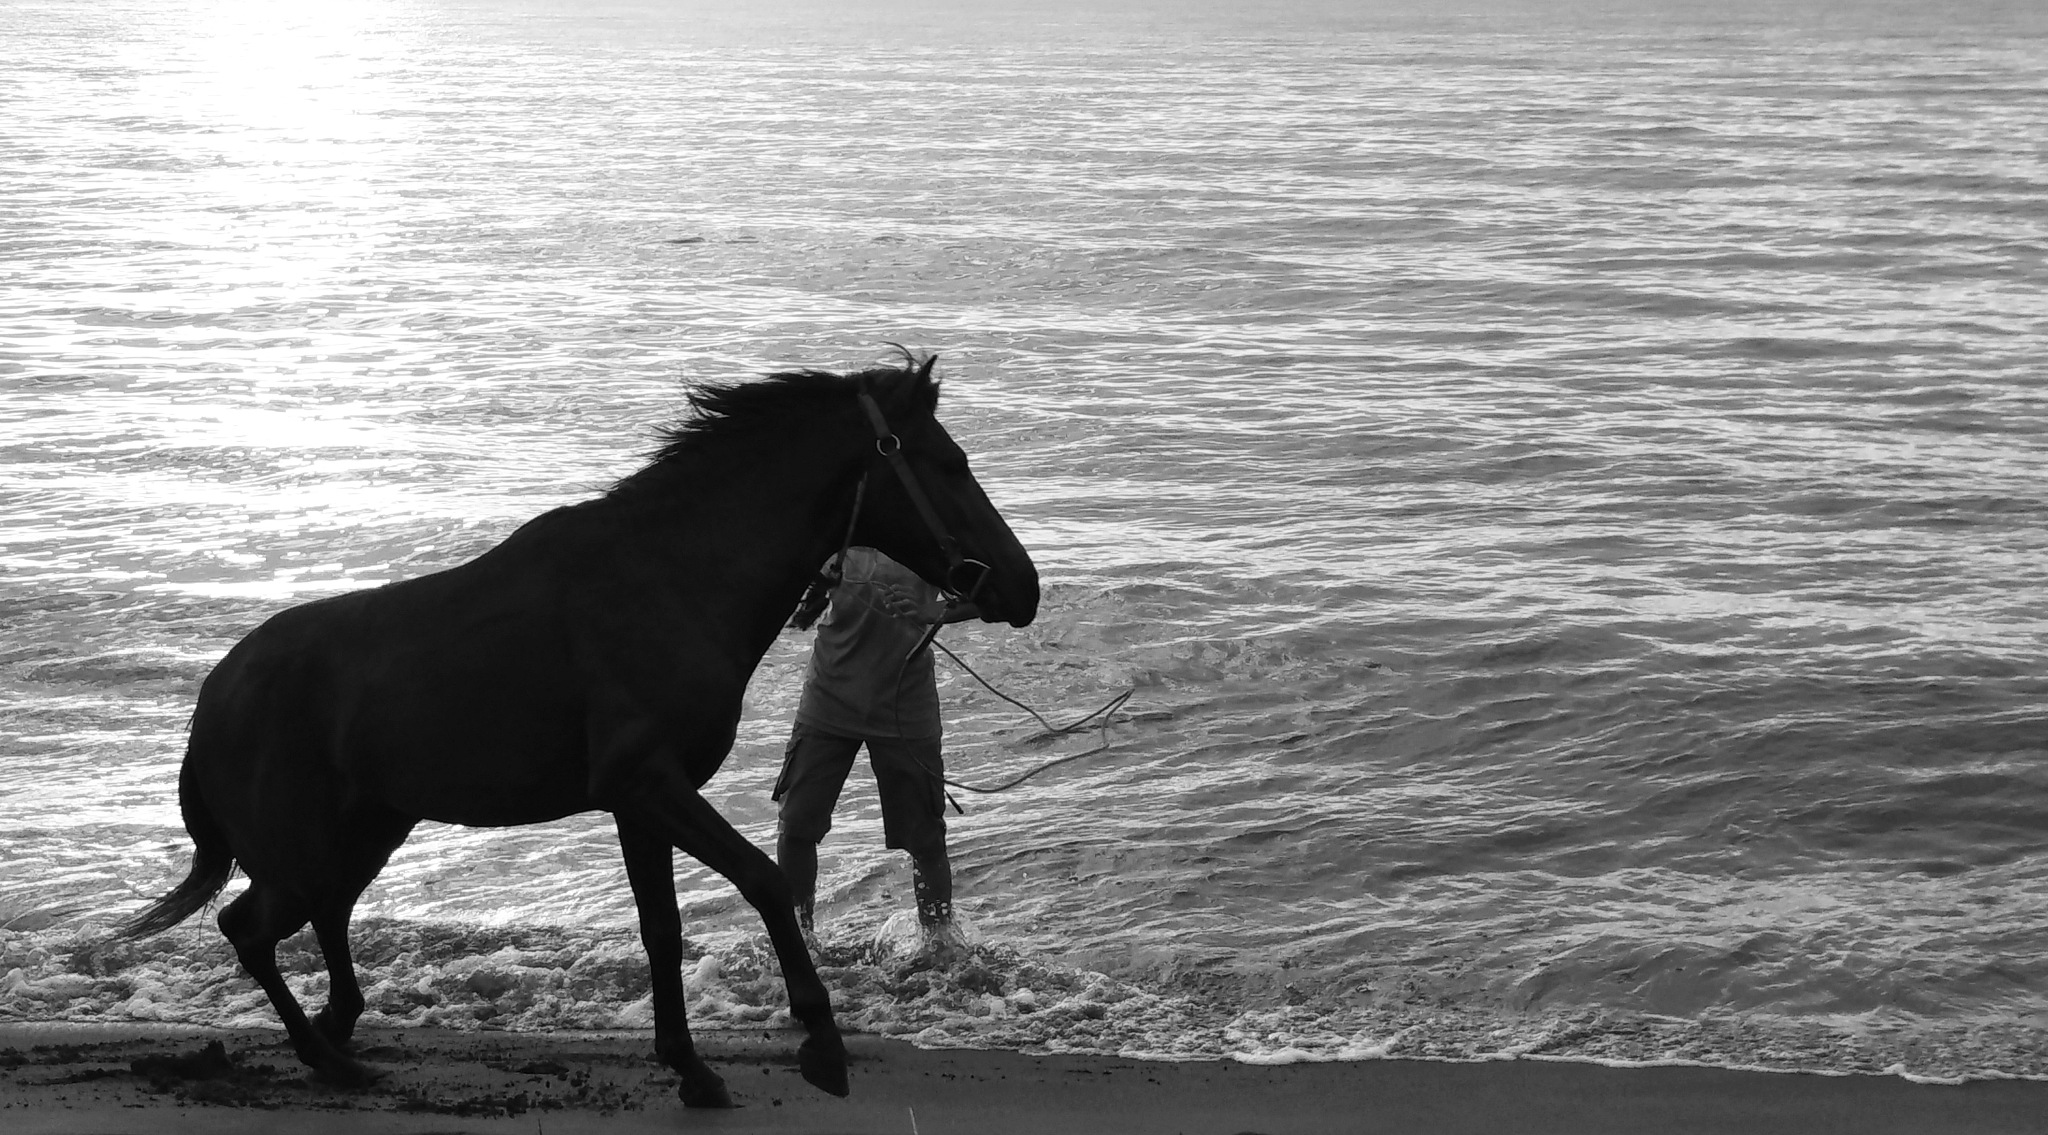 Play with a Horse by El Mamiq